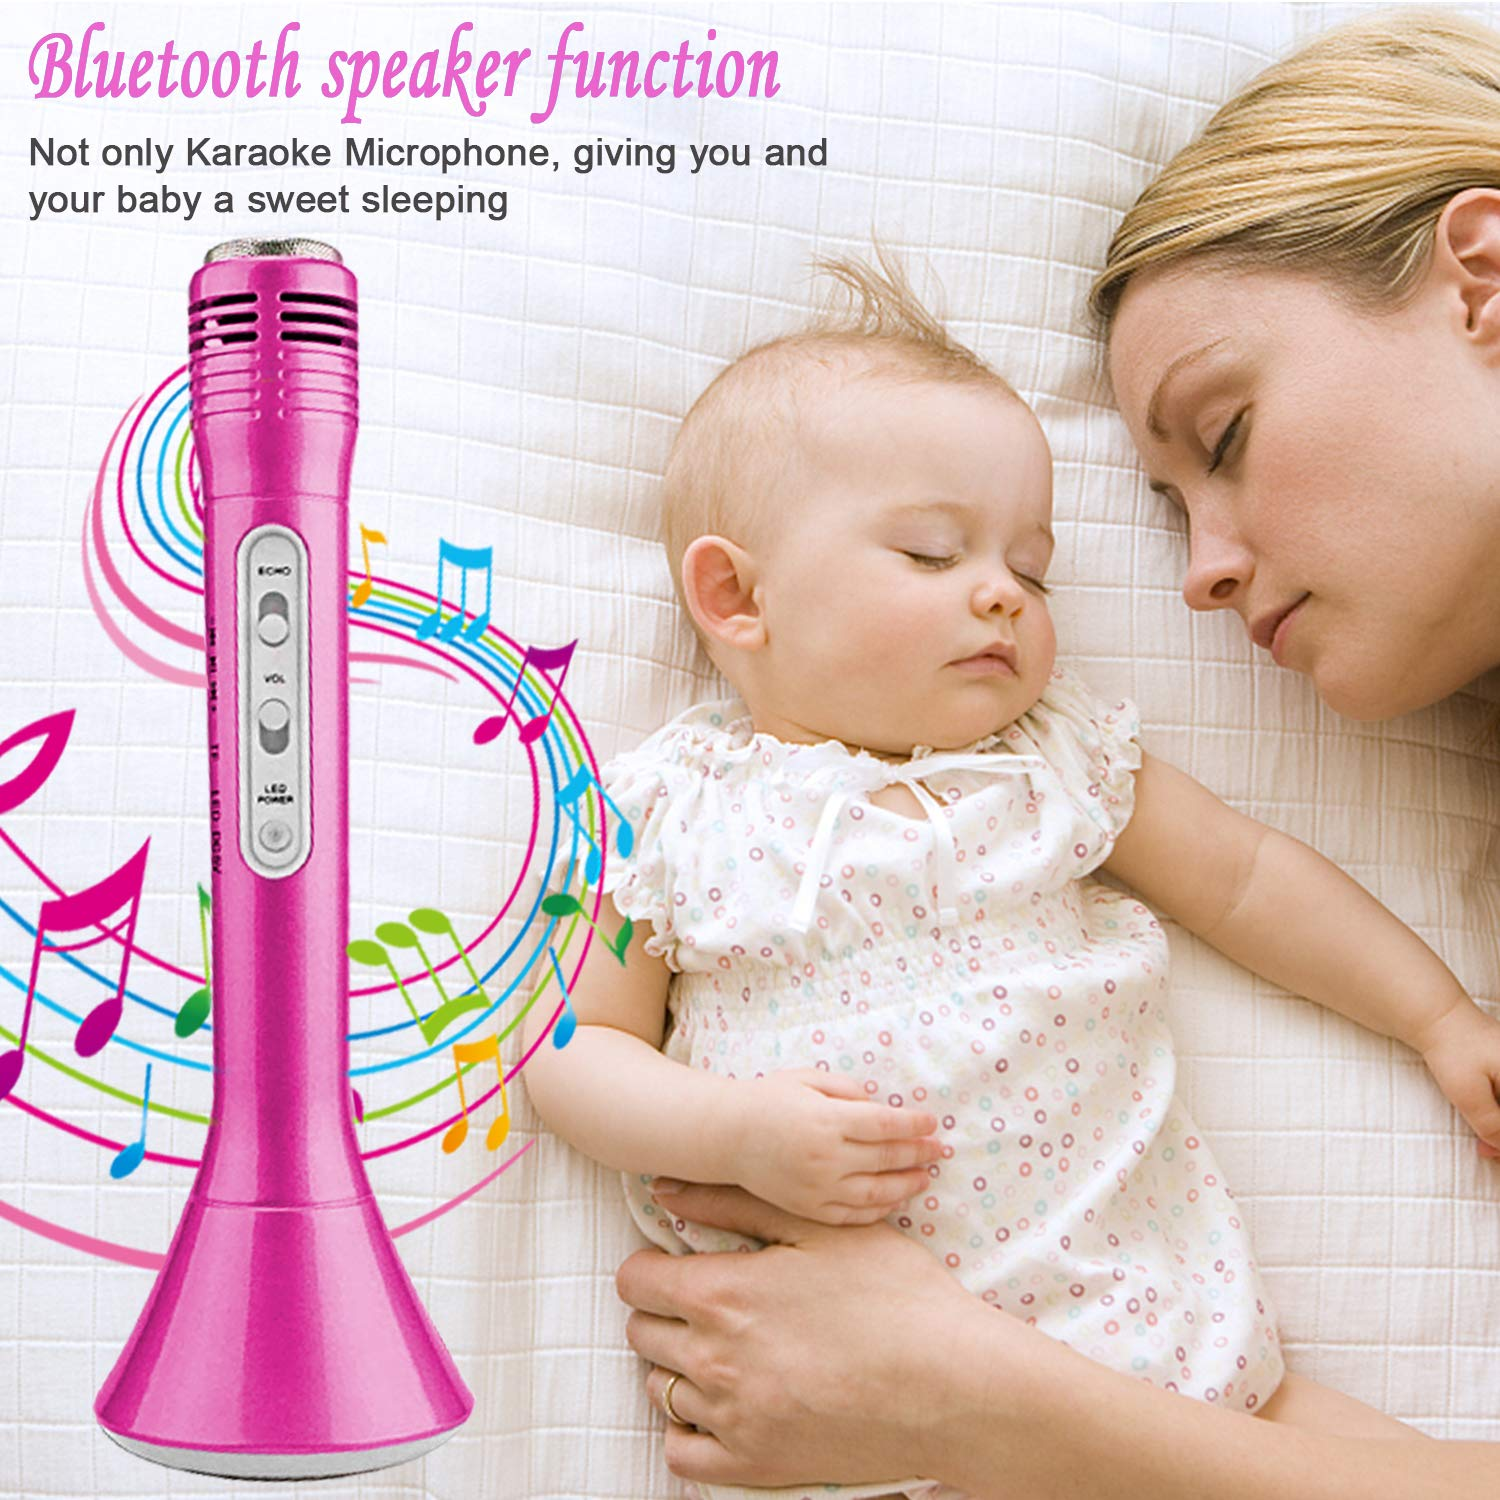 Kids Wireless Karaoke Microphone with Speaker Colorful LED Light for Girls Boys Toddlers Portable Handheld Bluetooth Music Toys for Singing Music Playing Party KTV Support iOS Android Birthday Gifts by iGeeKid (Image #2)